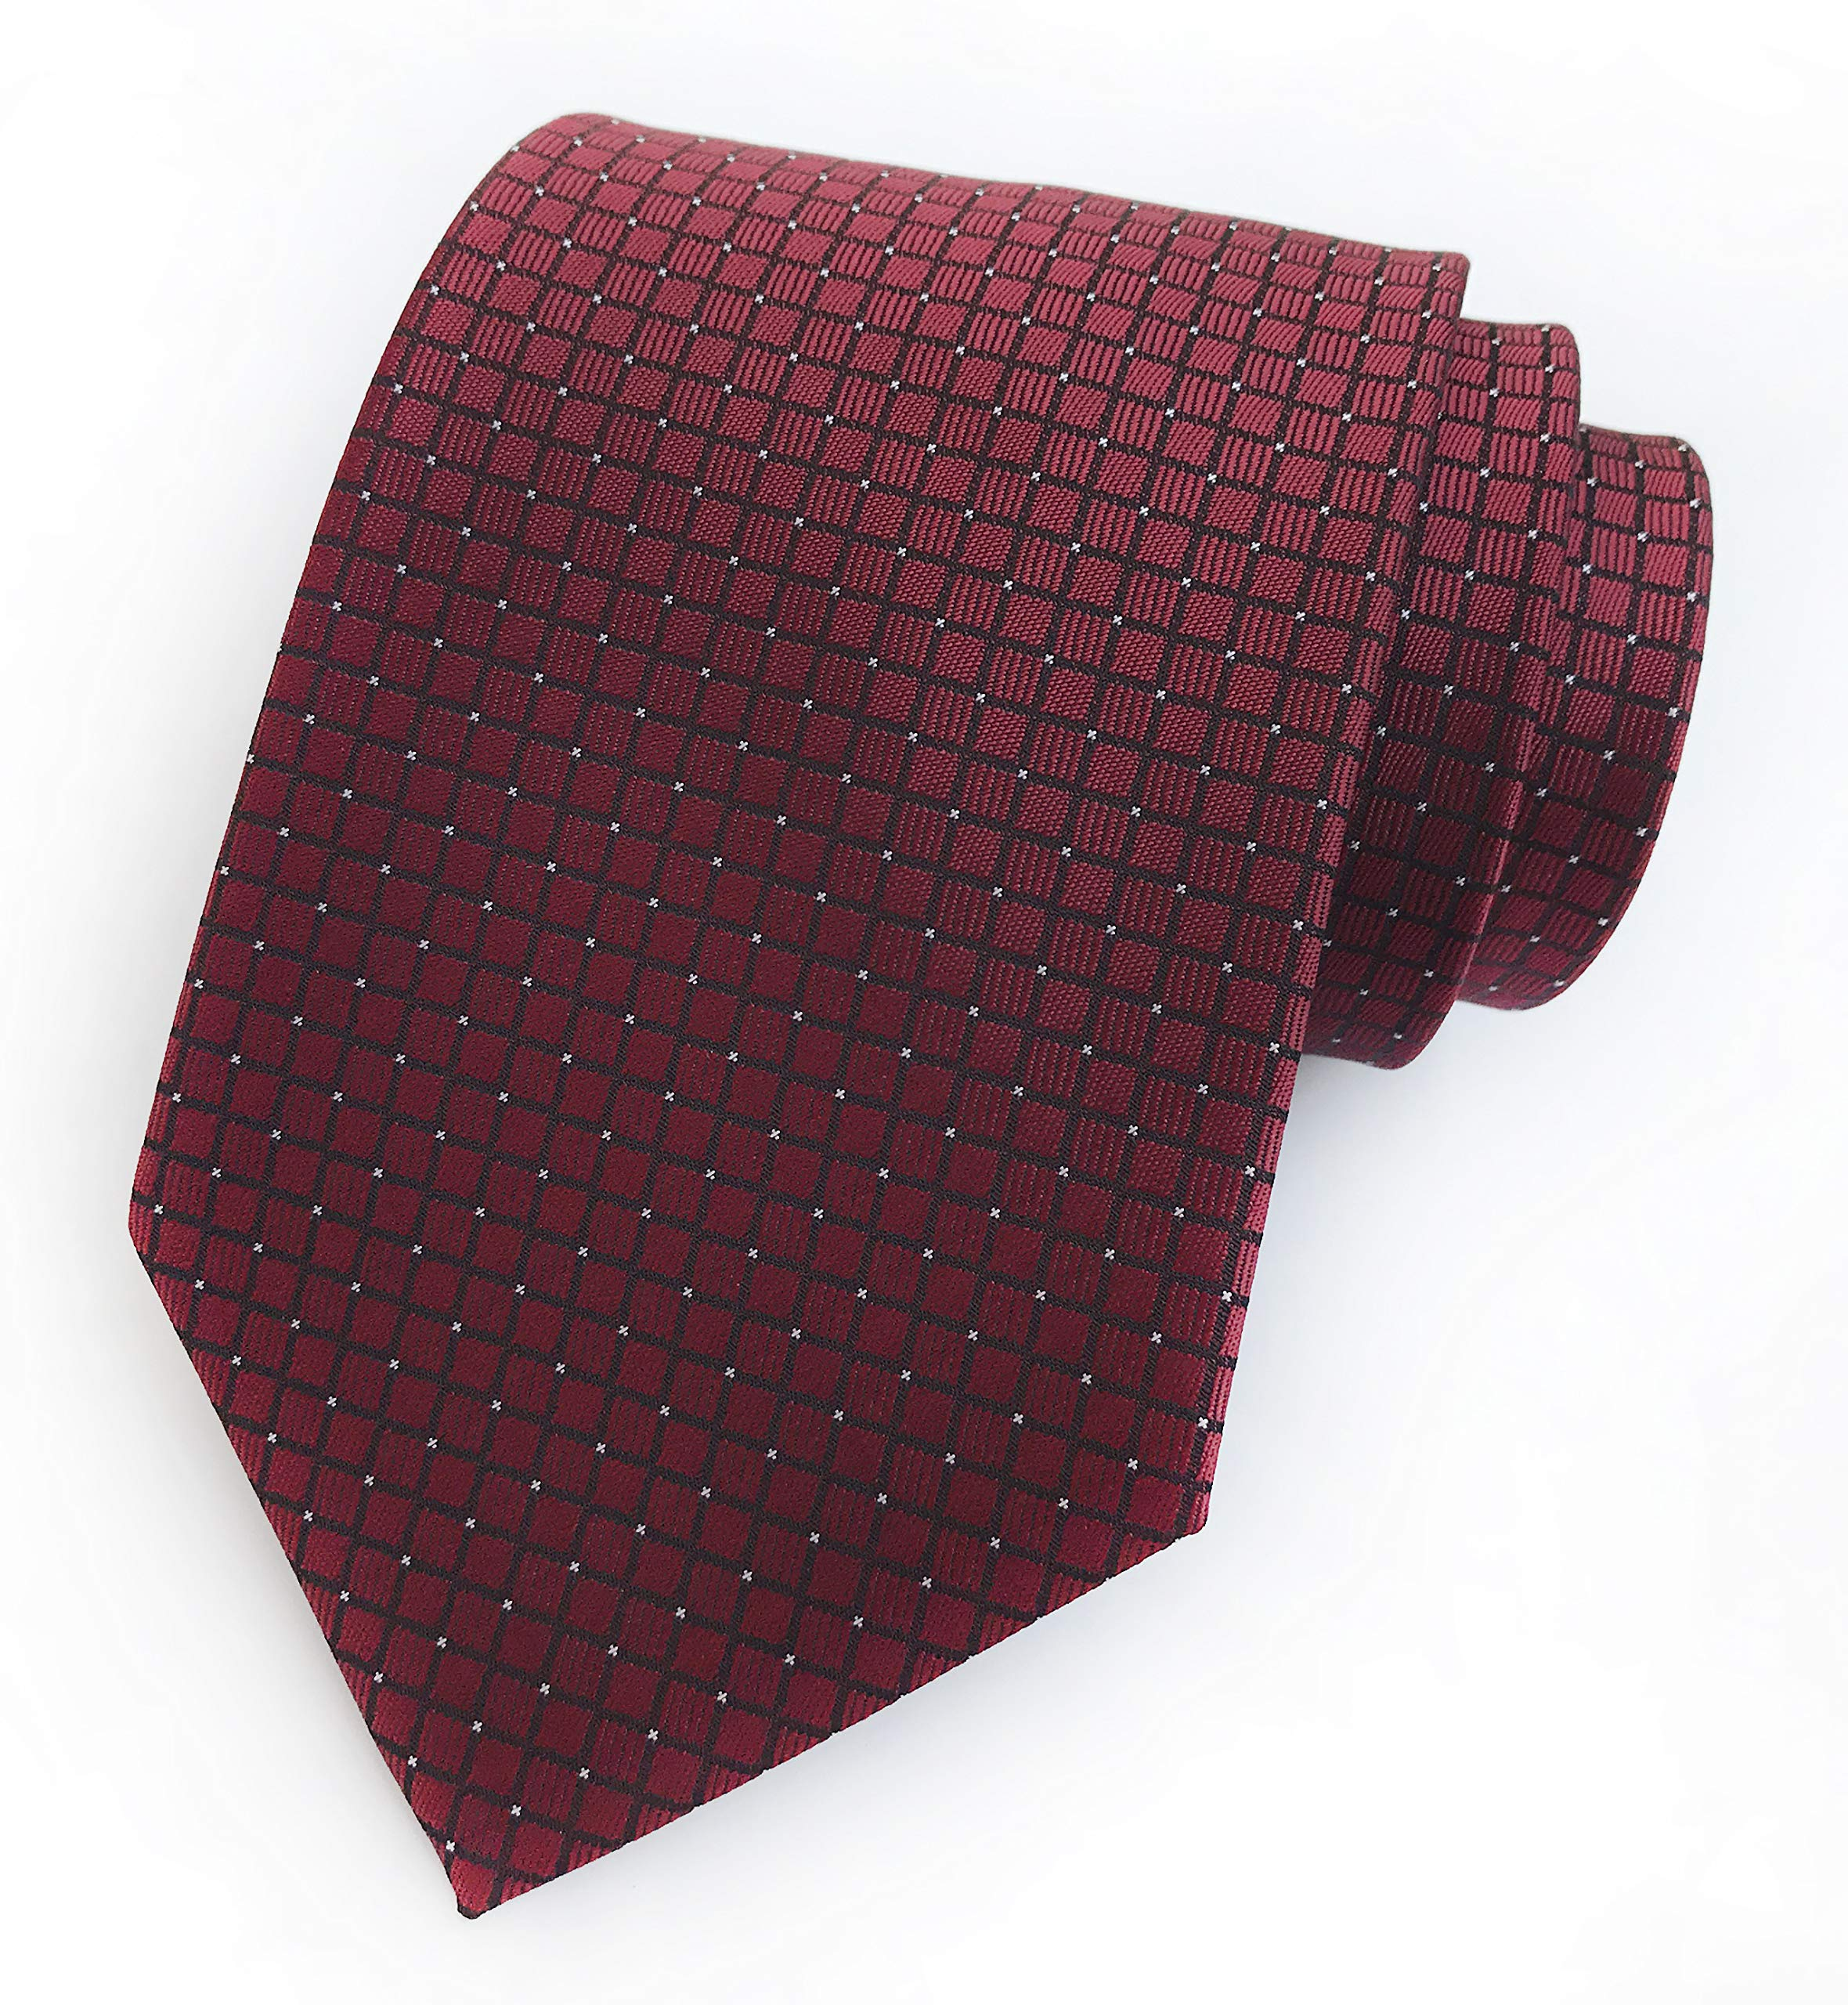 Men Micro Check Claret Red Silk Ties Vintage Maroon Autumn uk Brick Red Neckties by Kihatwin (Image #2)